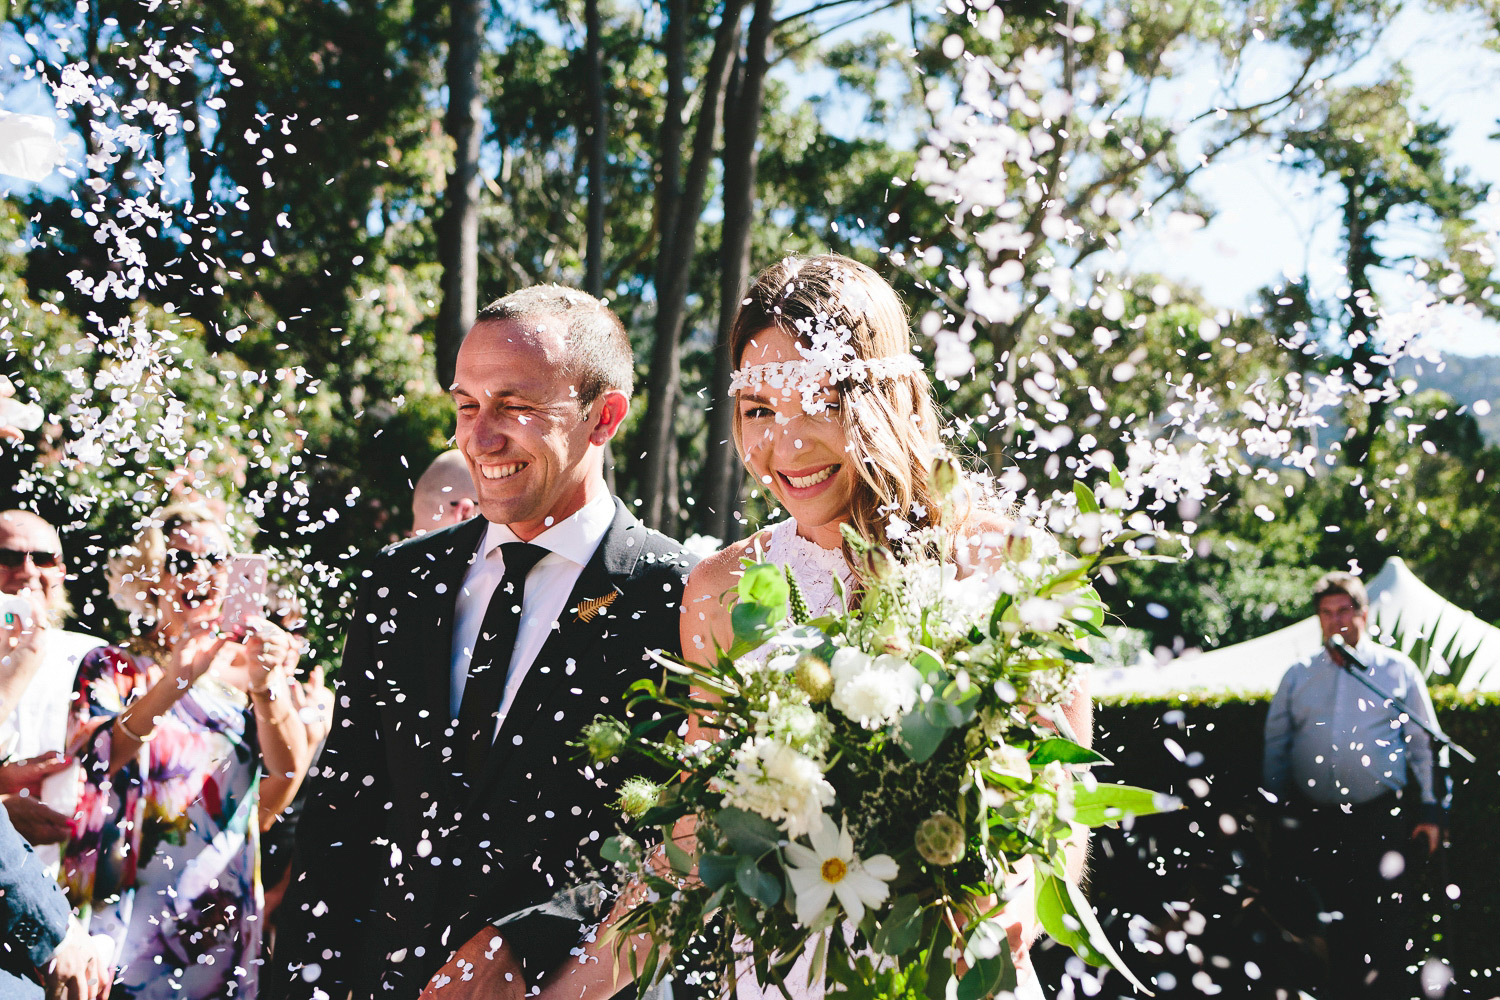 cape-town-wedding-photographer-western-cape-constansia-camilla-charlie-ray56.jpg